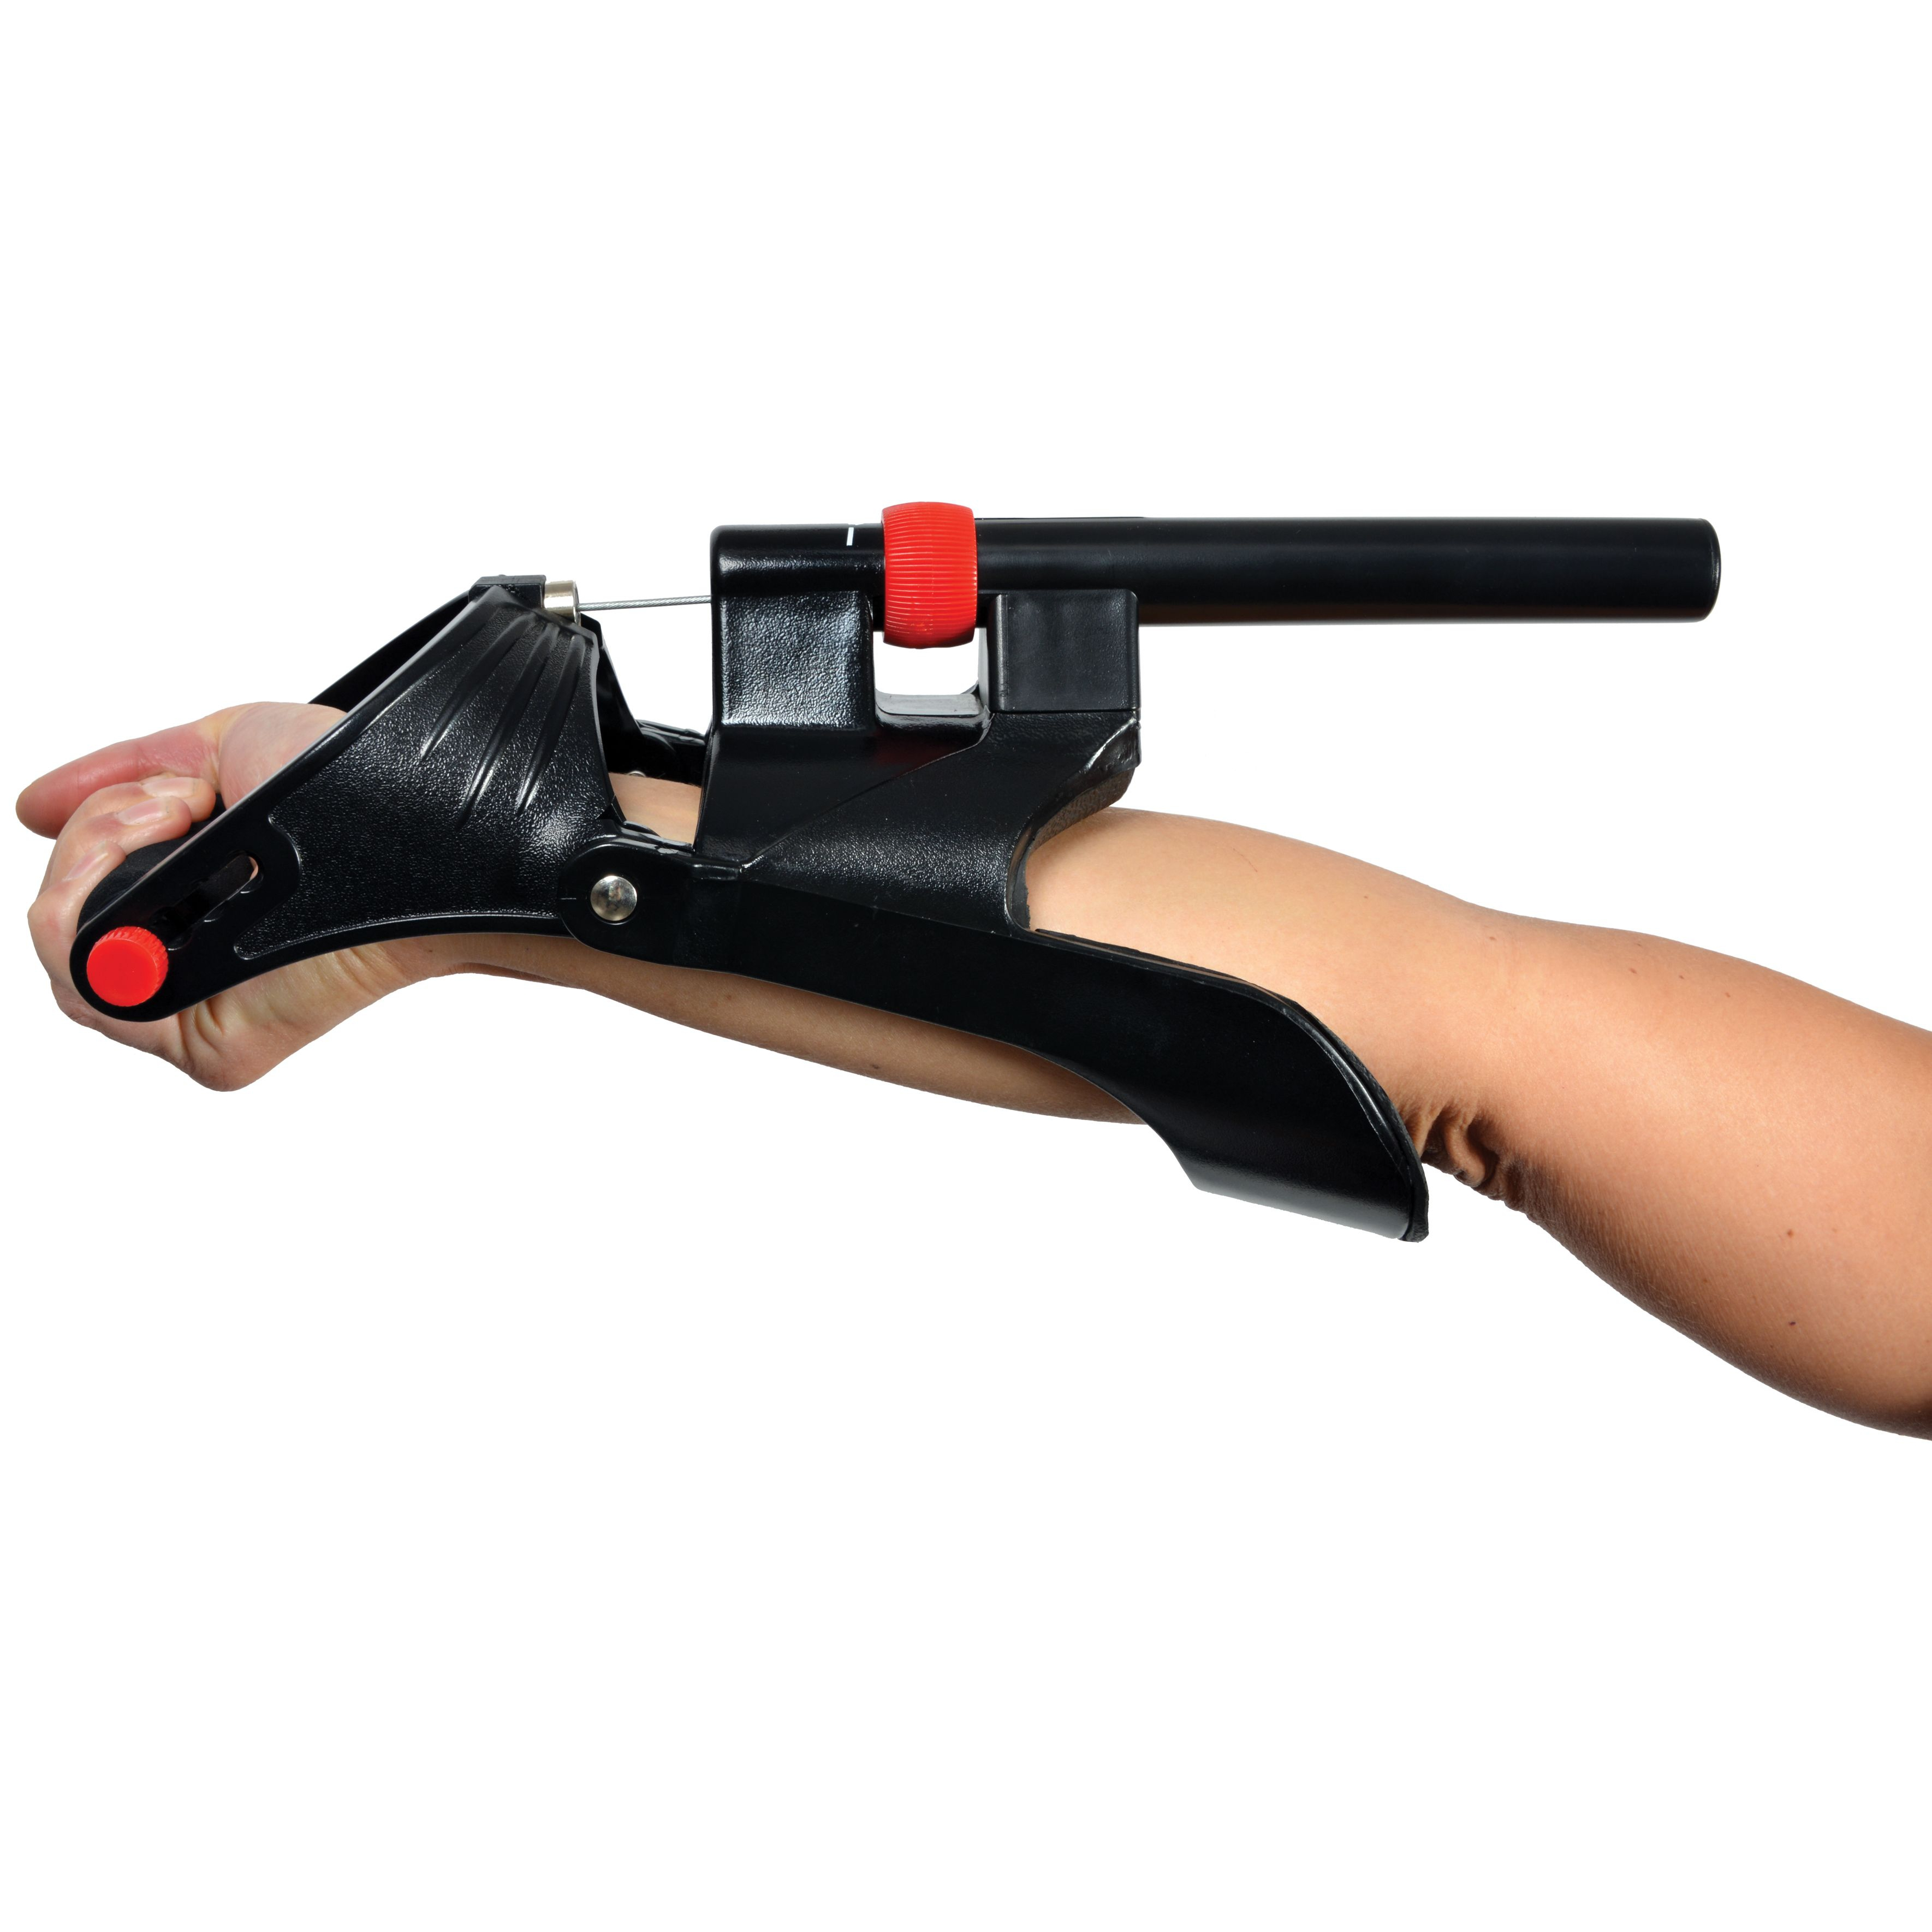 MoVeS Pols hand trainer weerstand